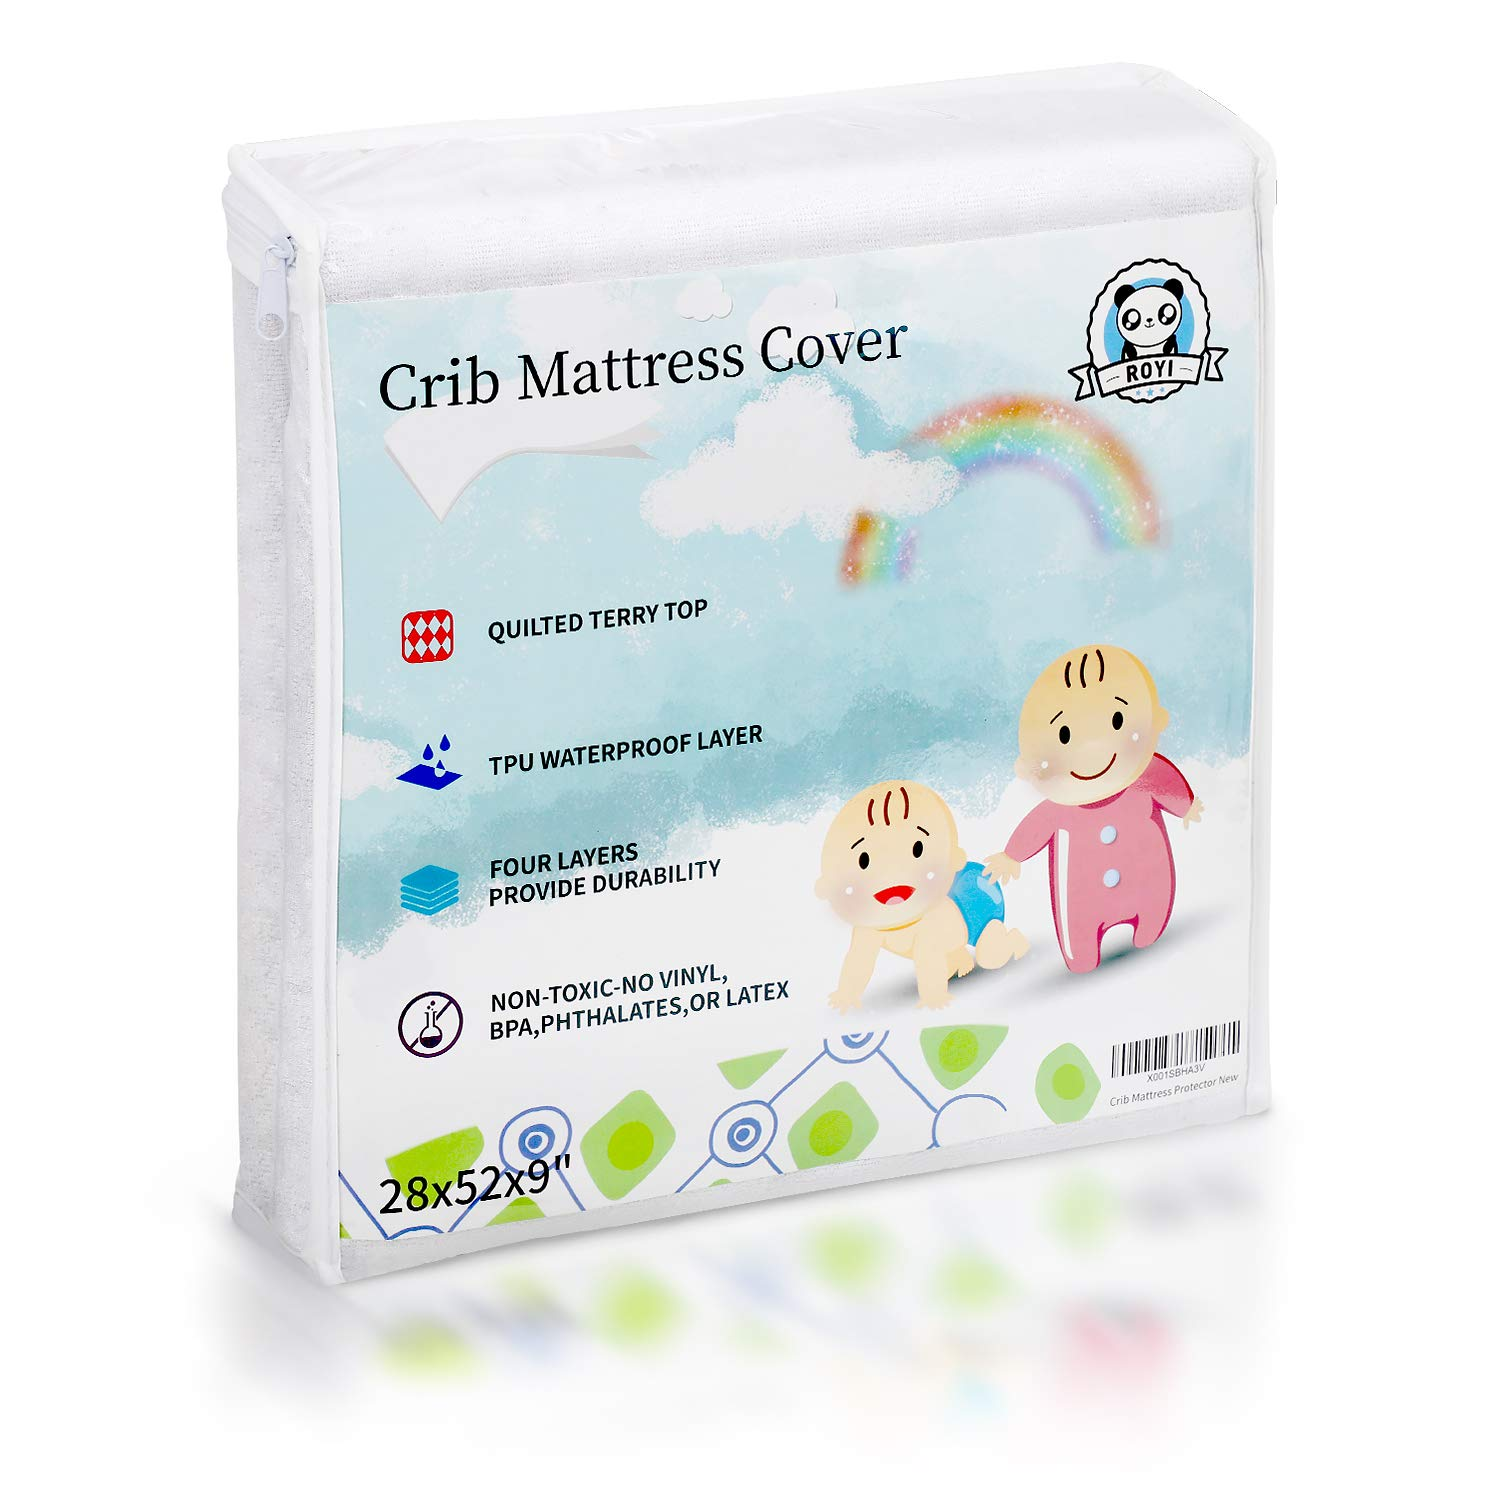 Baby Safe Crib Mattress Protector 100% Waterproof Toddler Protective Pad Cover Organic Bamboo Hypoallergenic Fits All Standard Crib